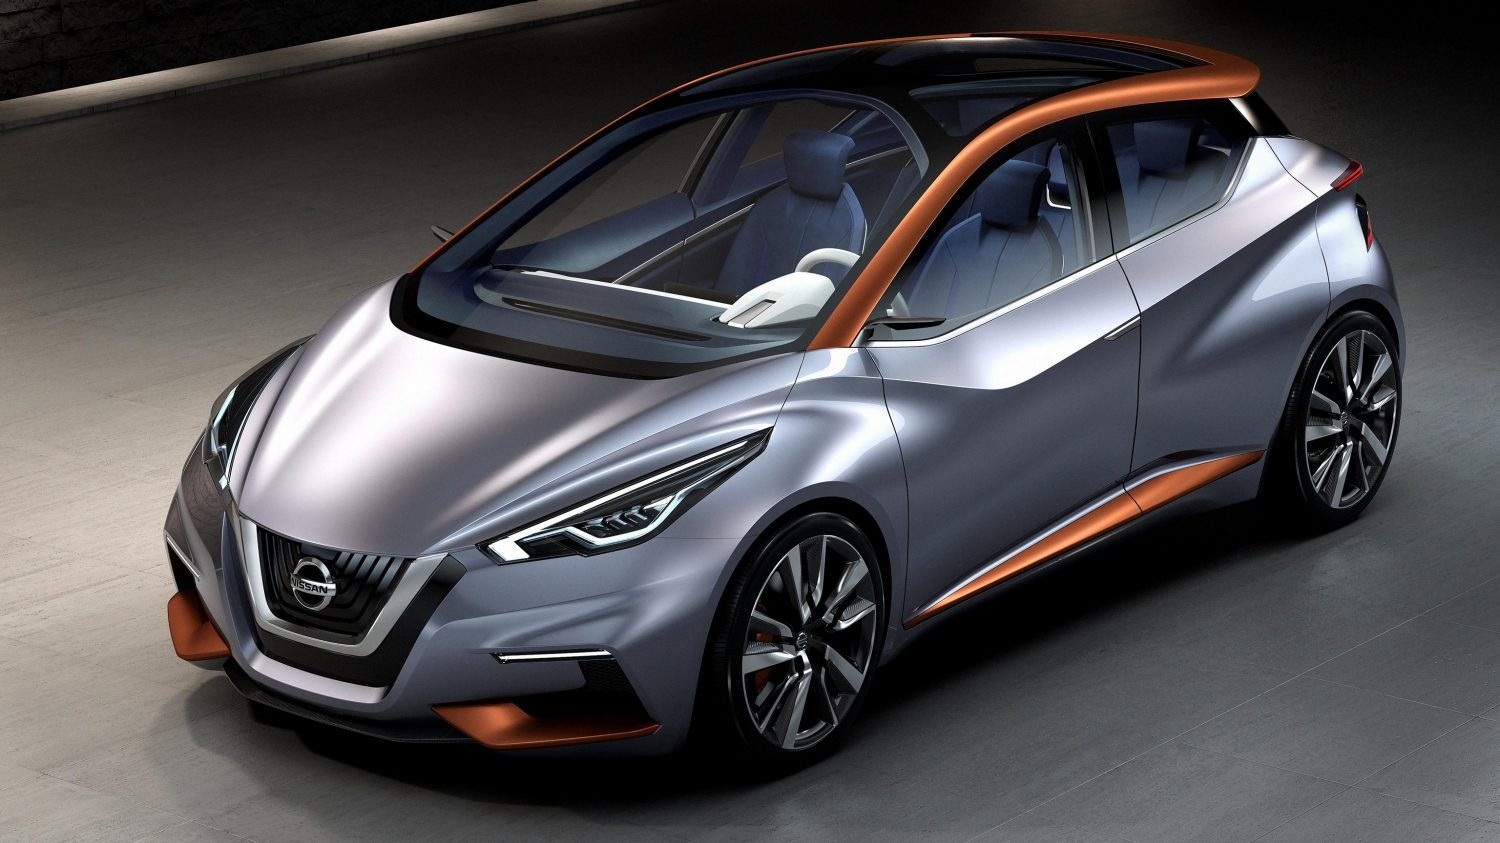 Experience Nissan - Concept car - Sway - 3/4 front view